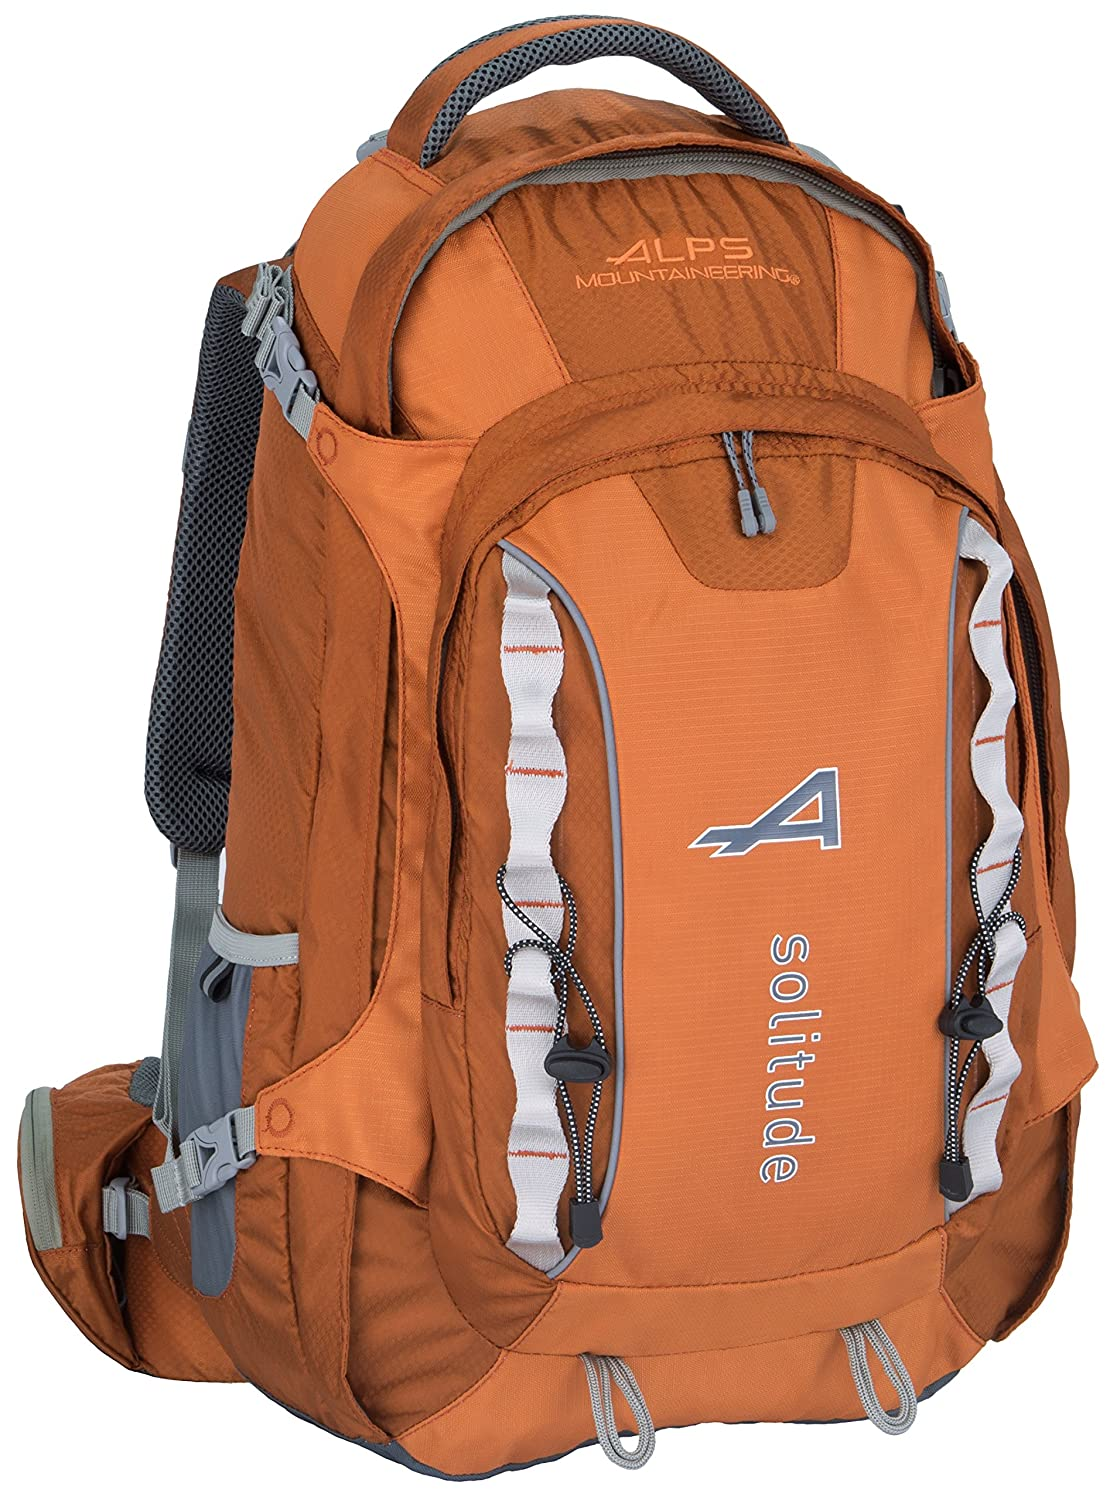 ALPS Mountaineering Solitude Daypack, Rust by ALPS Mountaineering B00FPQSBT6